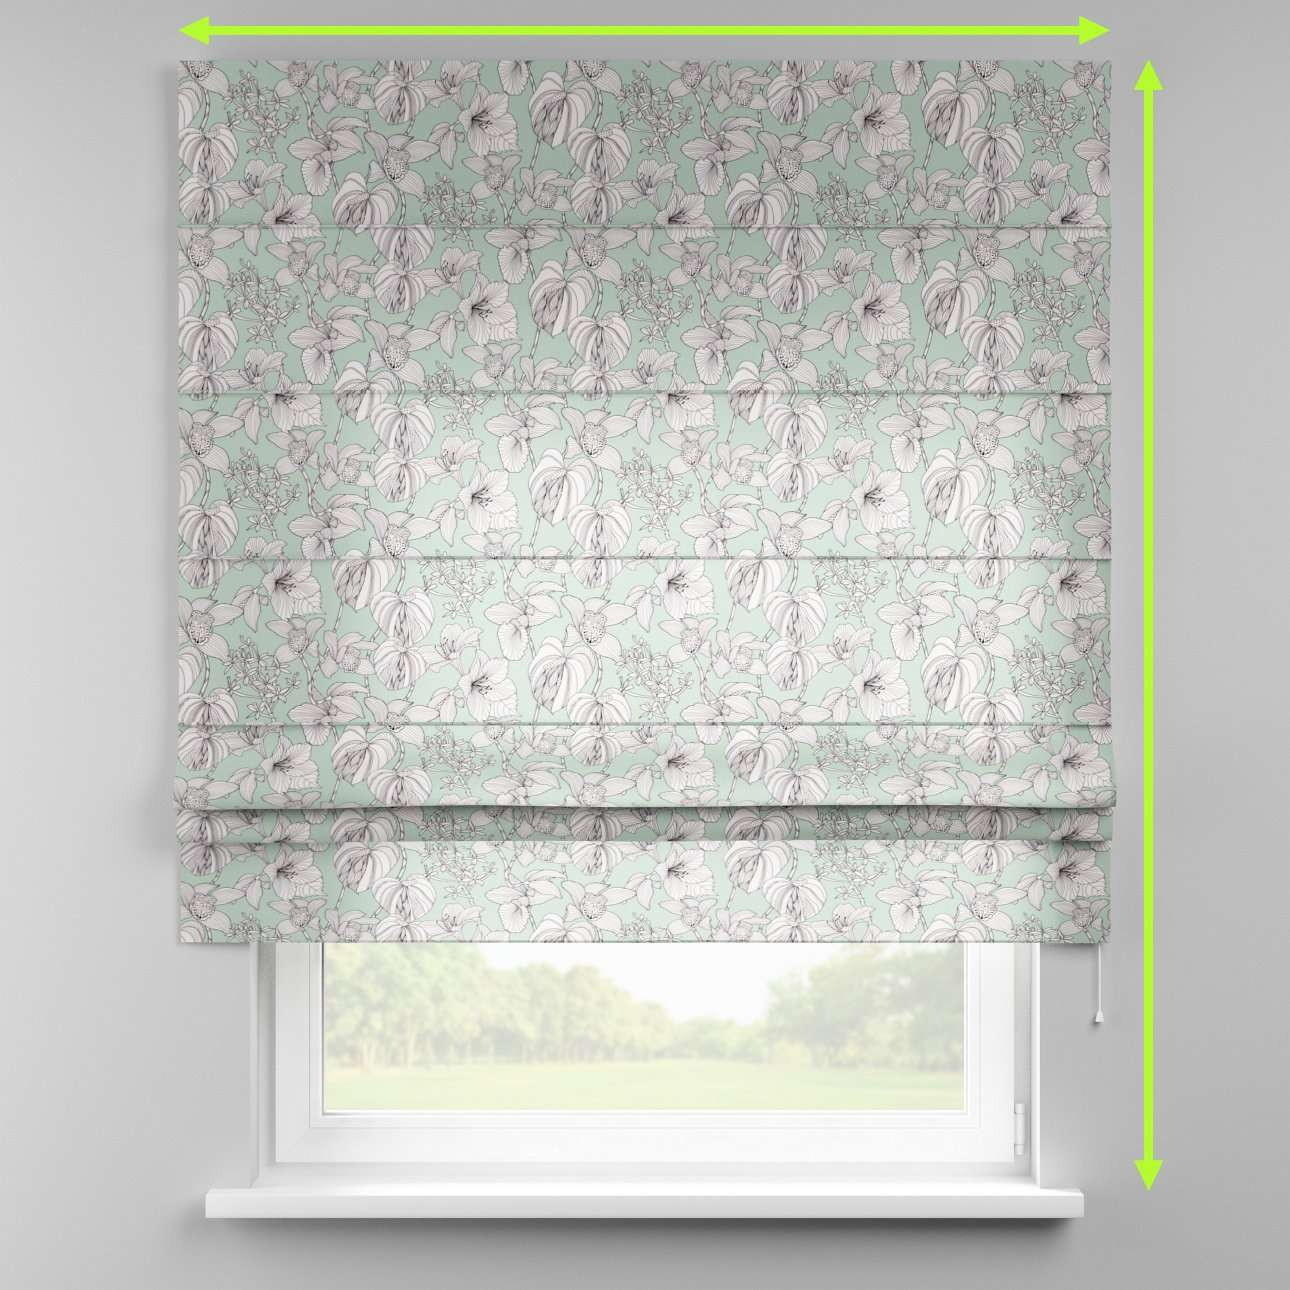 Padva roman blind in collection SALE, fabric: 137-76